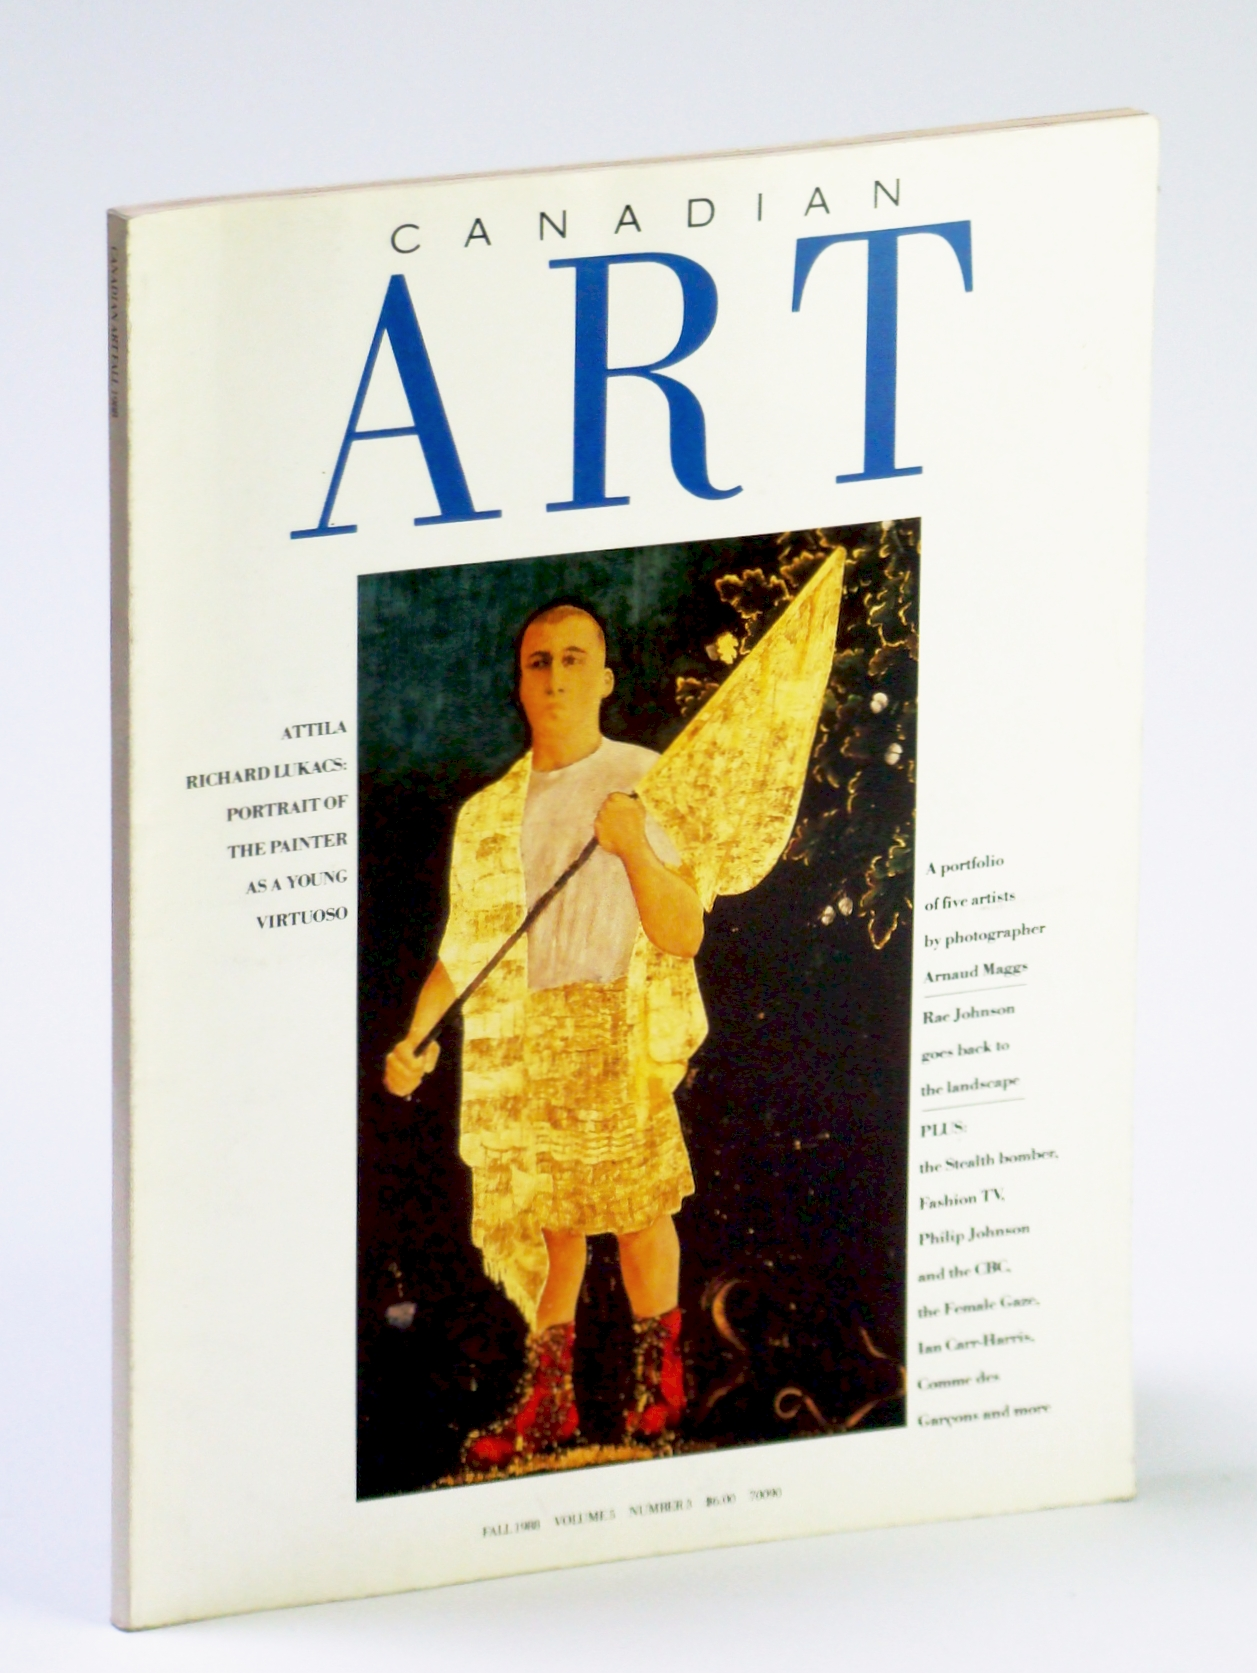 Image for Canadian Art (Magazine), Fall 1988, Volume 5, Number 3 - Attila Richard Lukacs